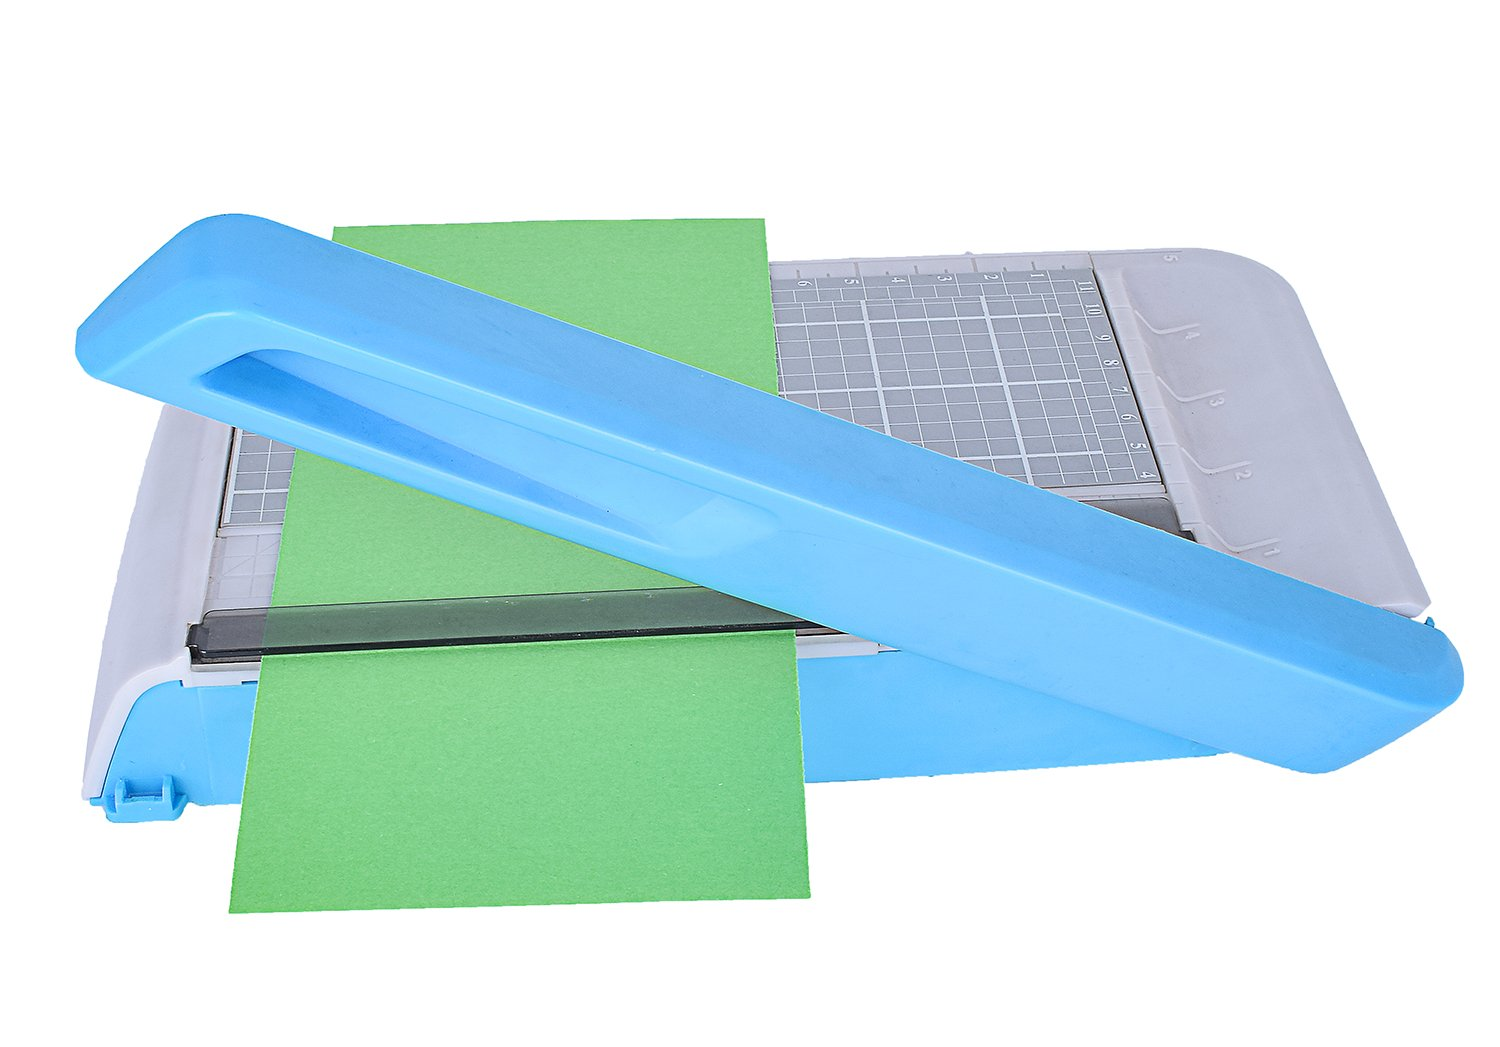 Paper Cutter Machine Photo Cutter Business Card Cutter Small Size with Mezzanine Storage Room (Small)